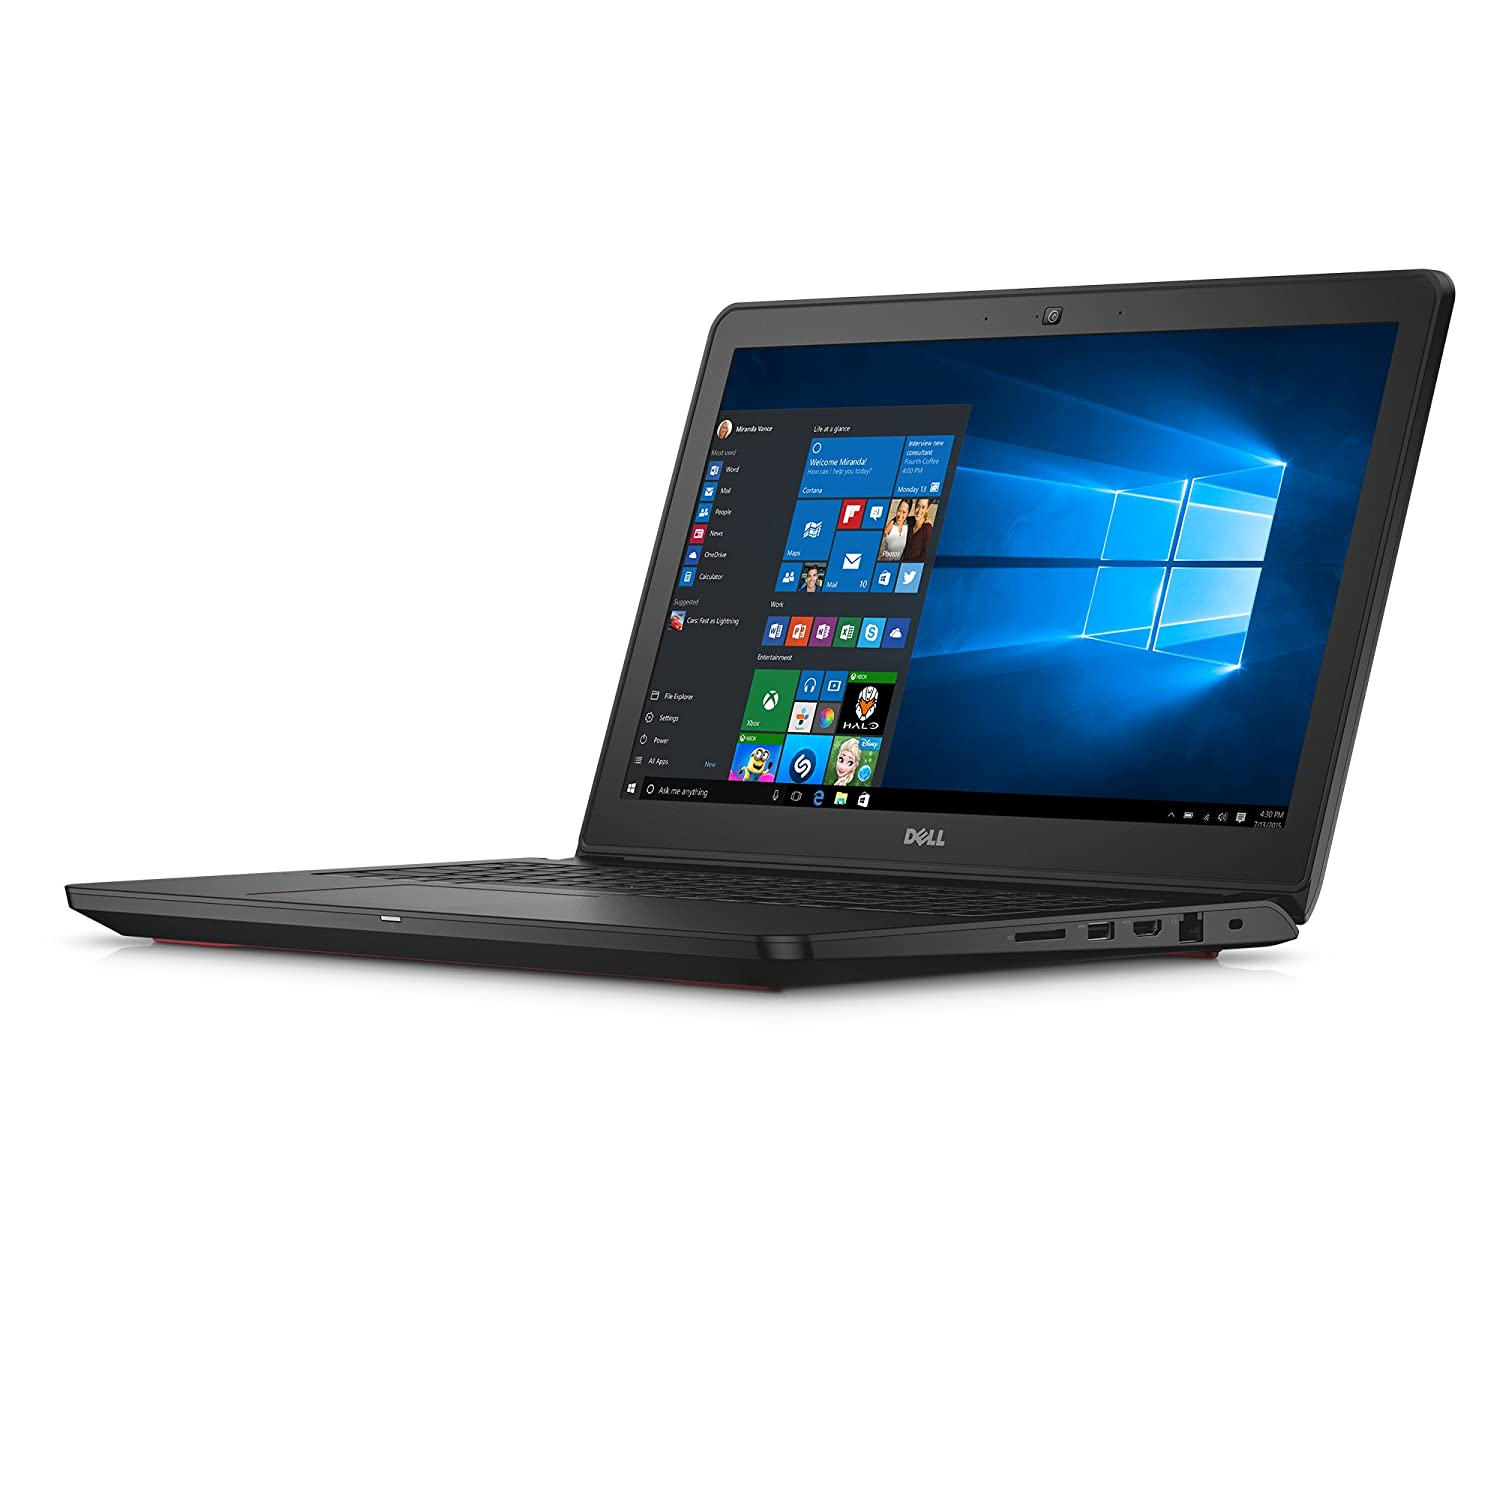 Dell Inspiron i7559-5012GRY 15.6 Inch Touchscreen Laptop (6th Generation Intel Core i7, 8 GB RAM, 1 TB HDD + 8 GB SSD) NVIDIA GeForce GTX 960M, Microsoft Signature Edition